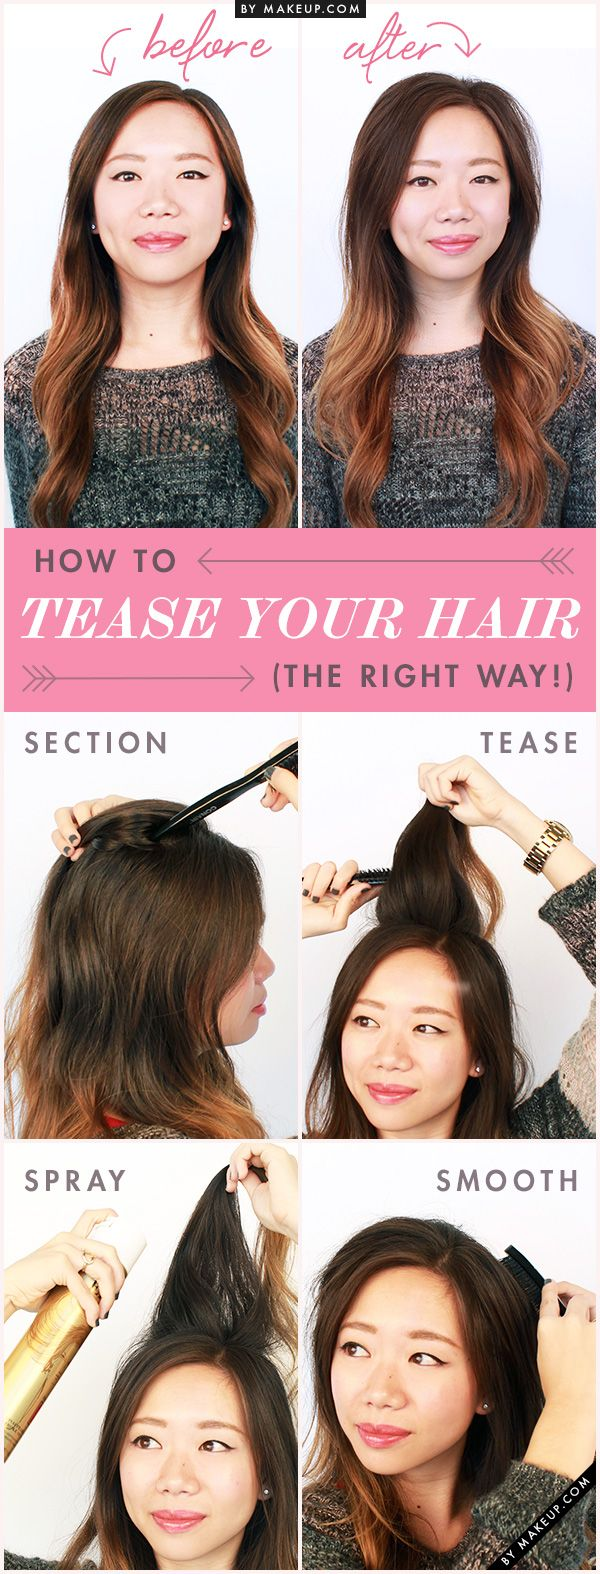 Section, tease, spray, and smooth. Here are the steps you SHOULD be taking to te...